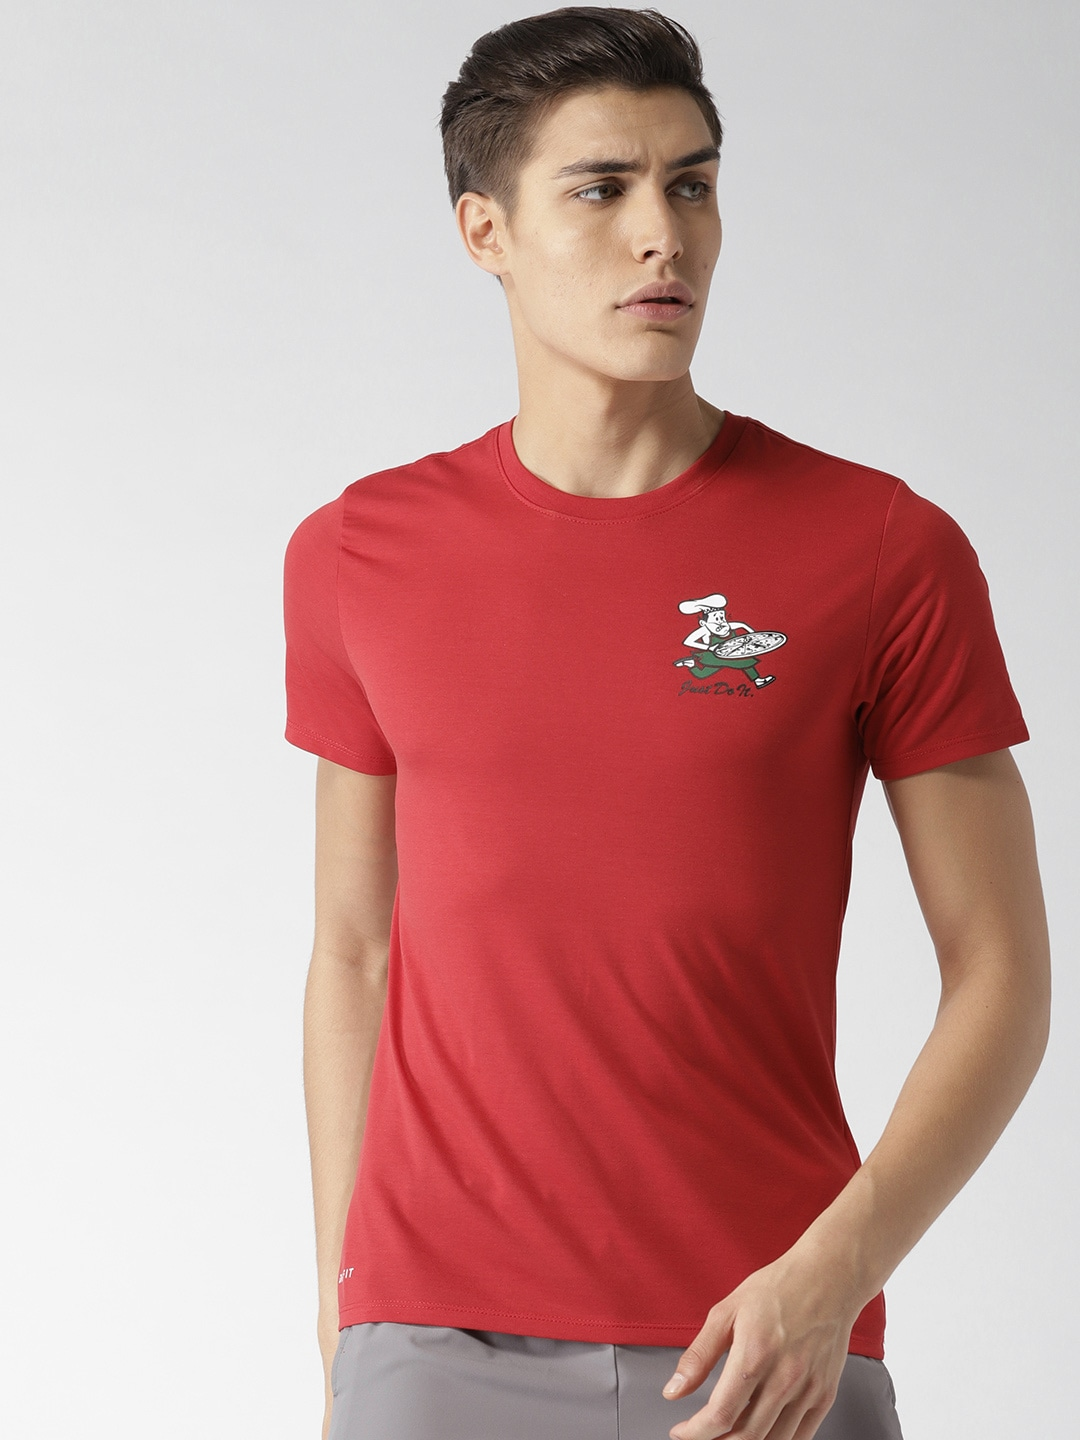 f8caf204 Nike Men Tshirt - Buy Nike Men Tshirt online in India